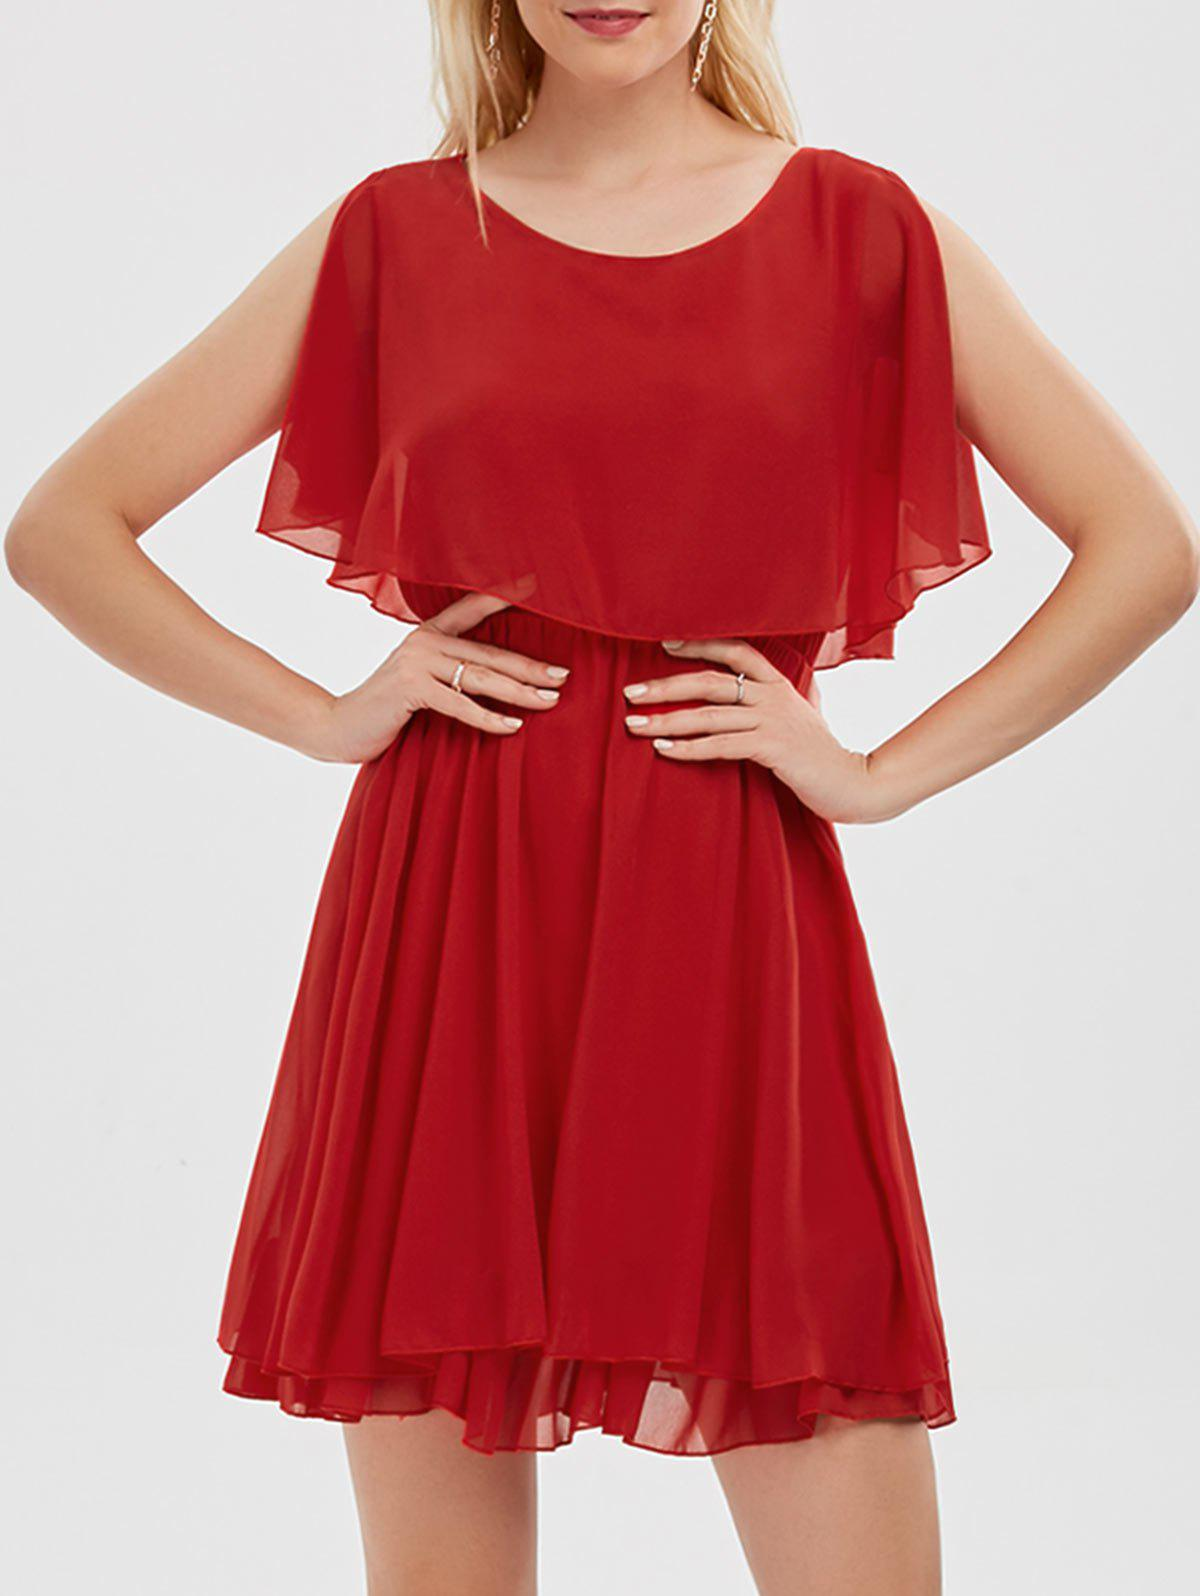 Ruffle Chiffon Cold Shoulder Mini Dress - Rouge XL